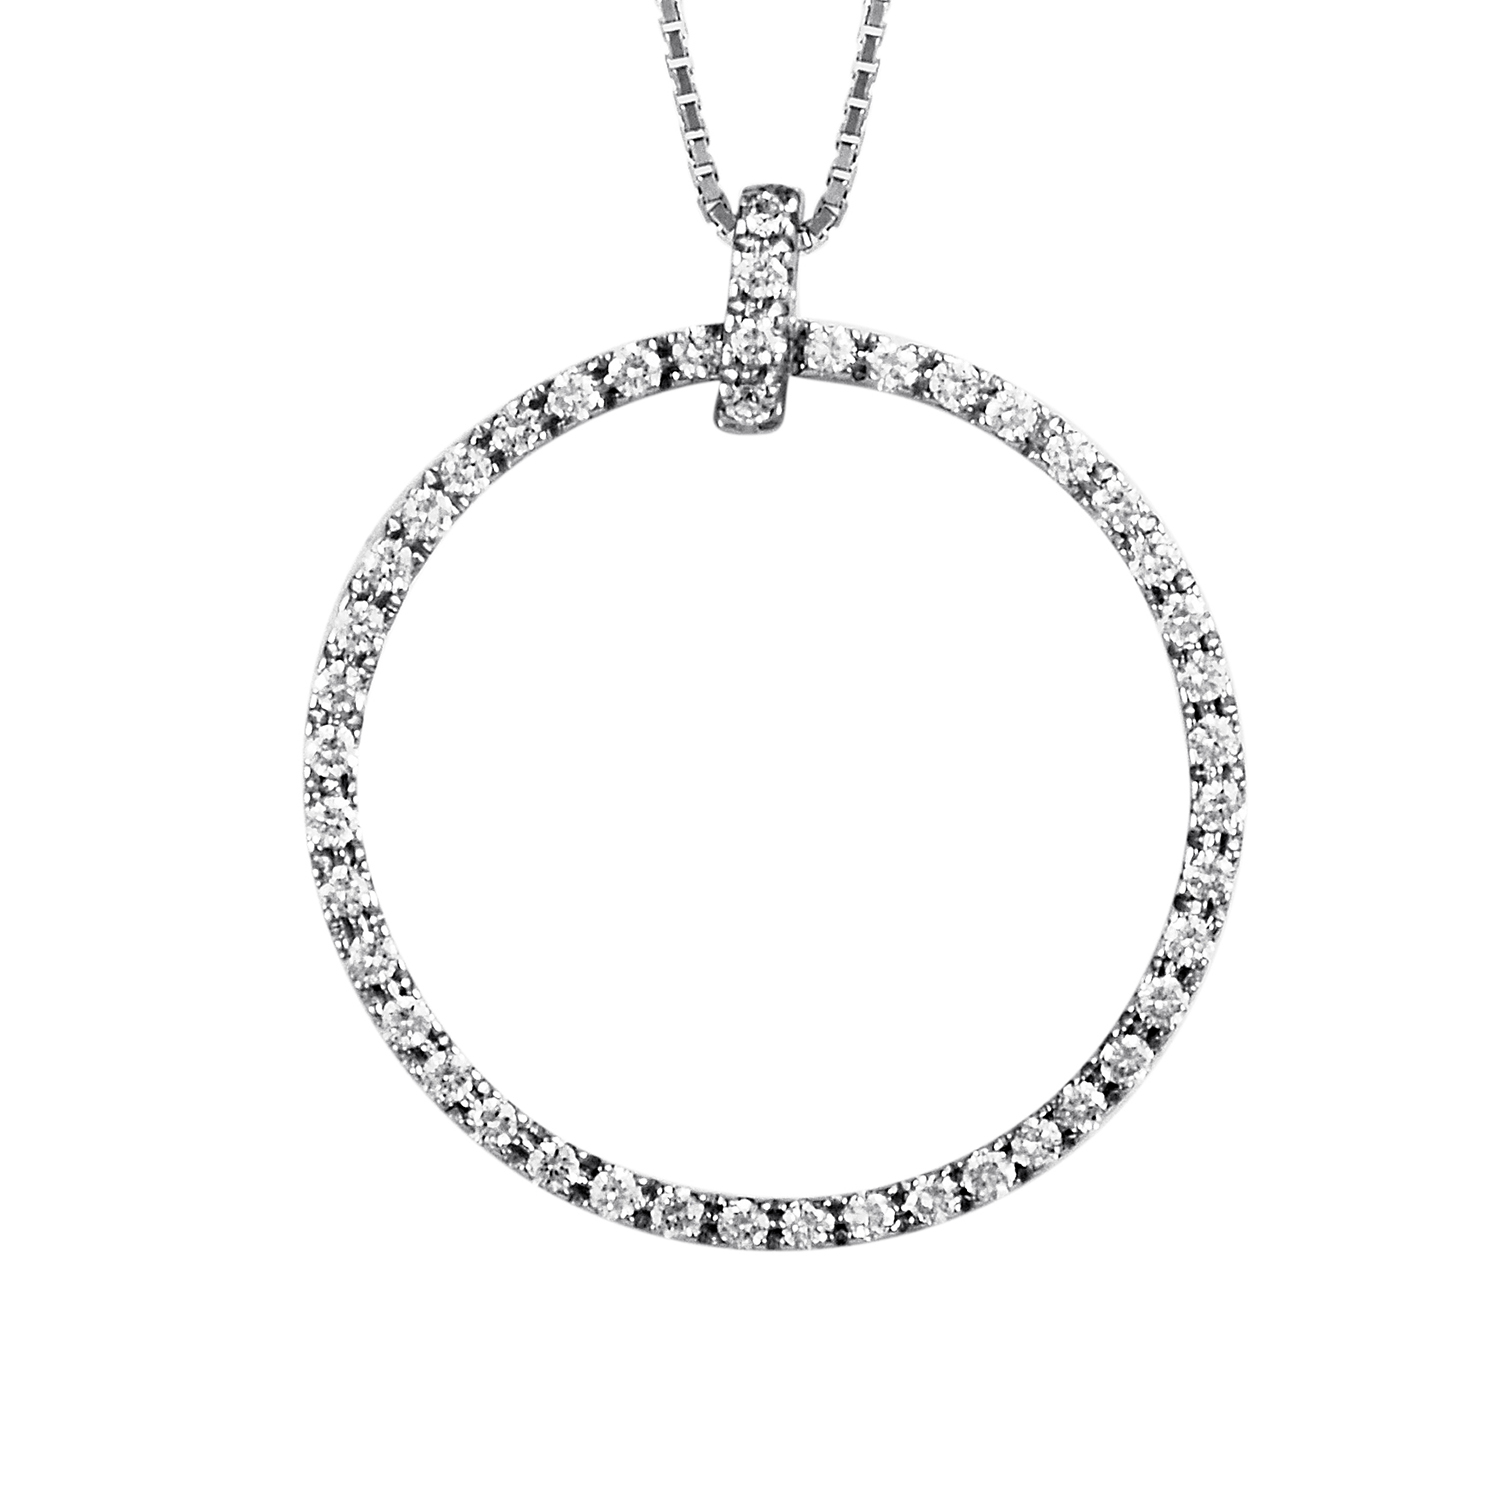 Women's 18K White Gold Diamond Infinity Pendant Necklace 0726-660-4